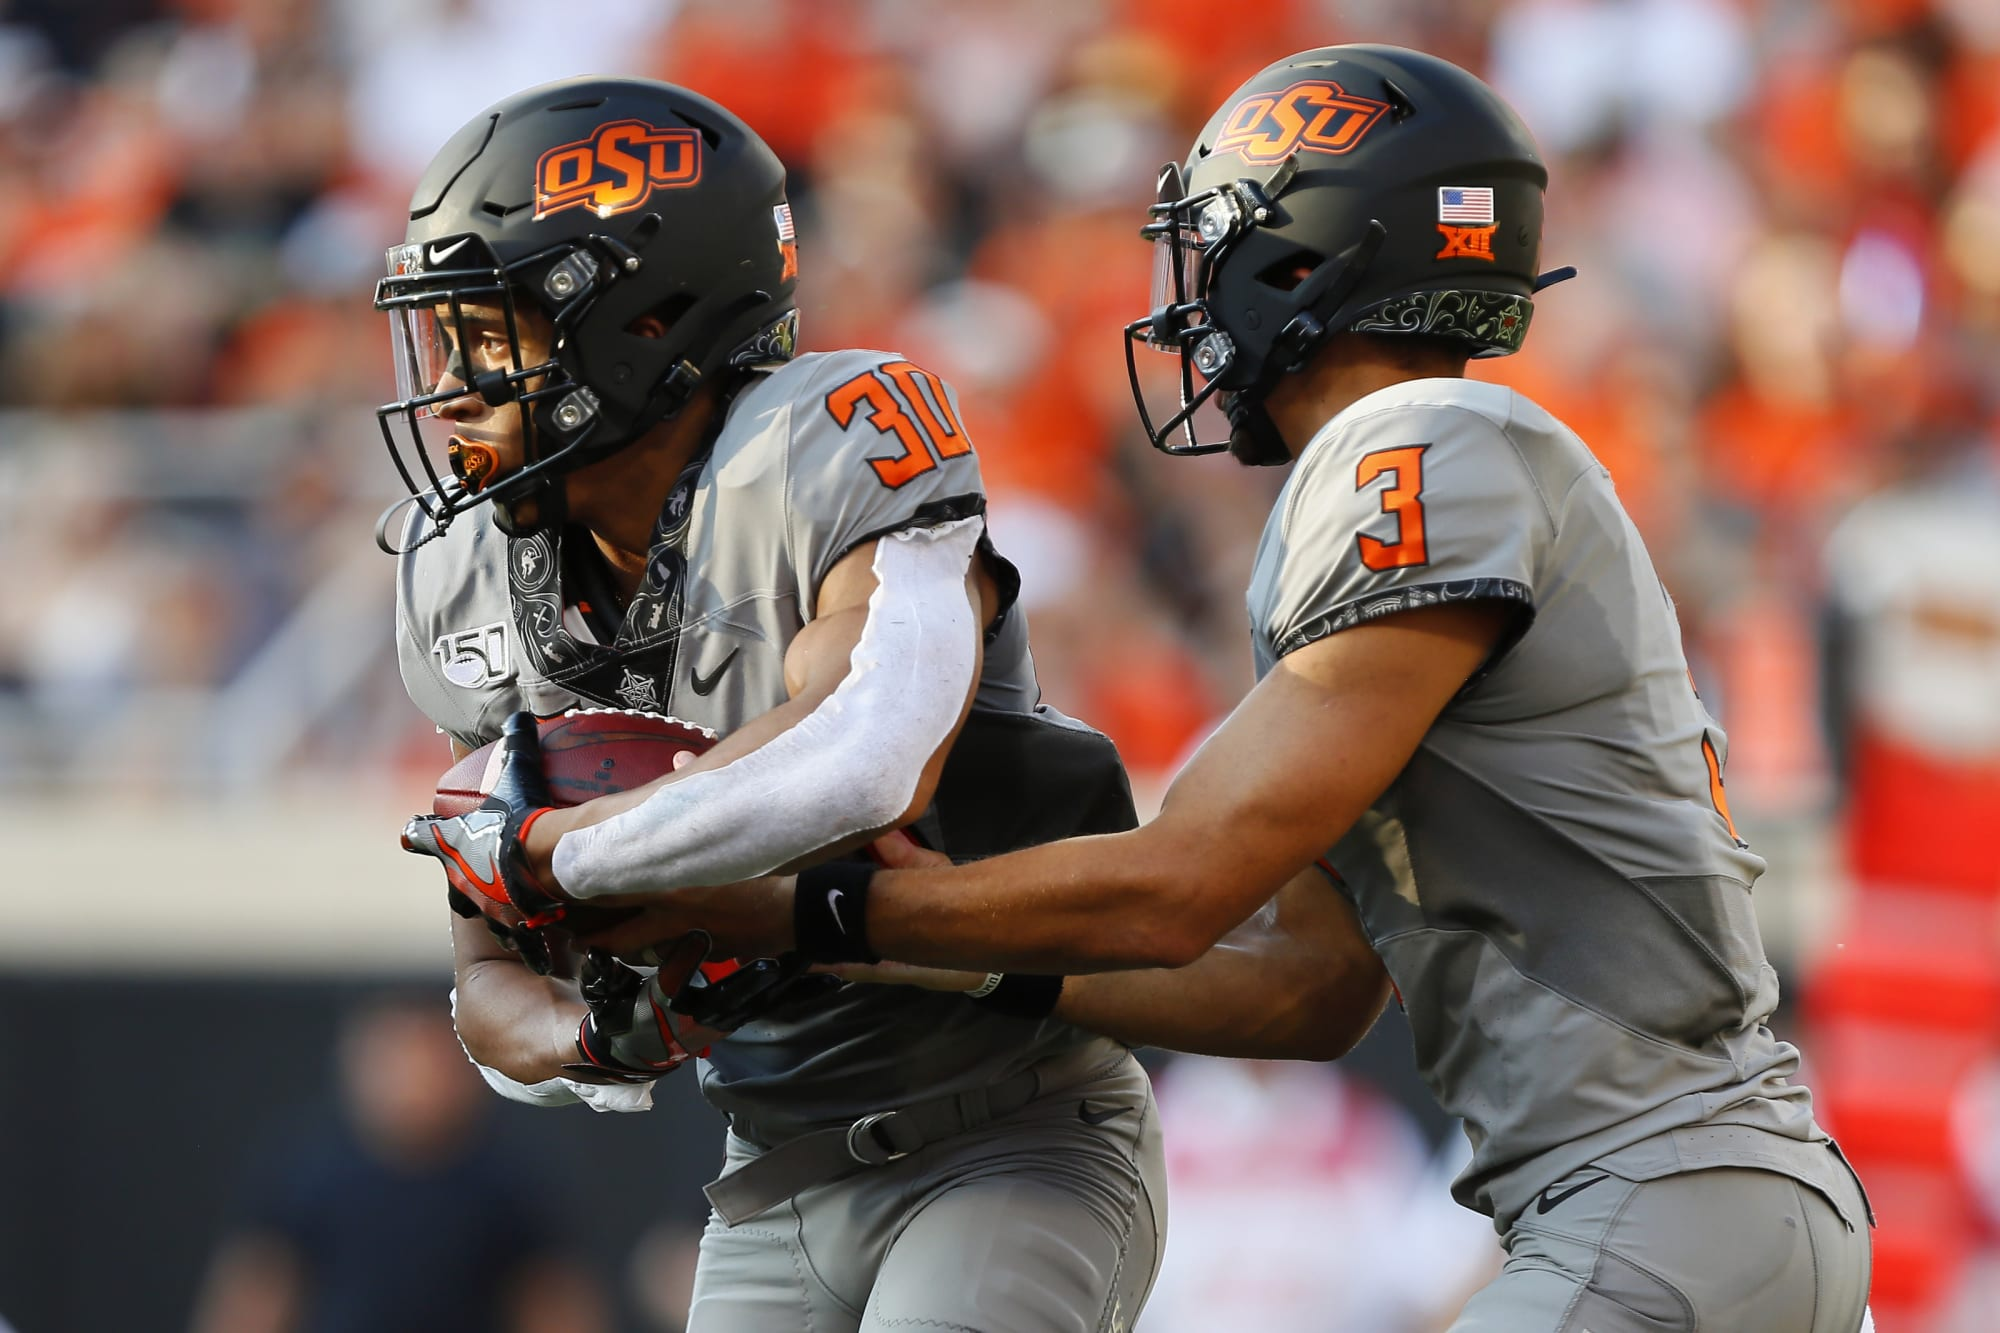 Texas Football: 10 most problematic players on Oklahoma State